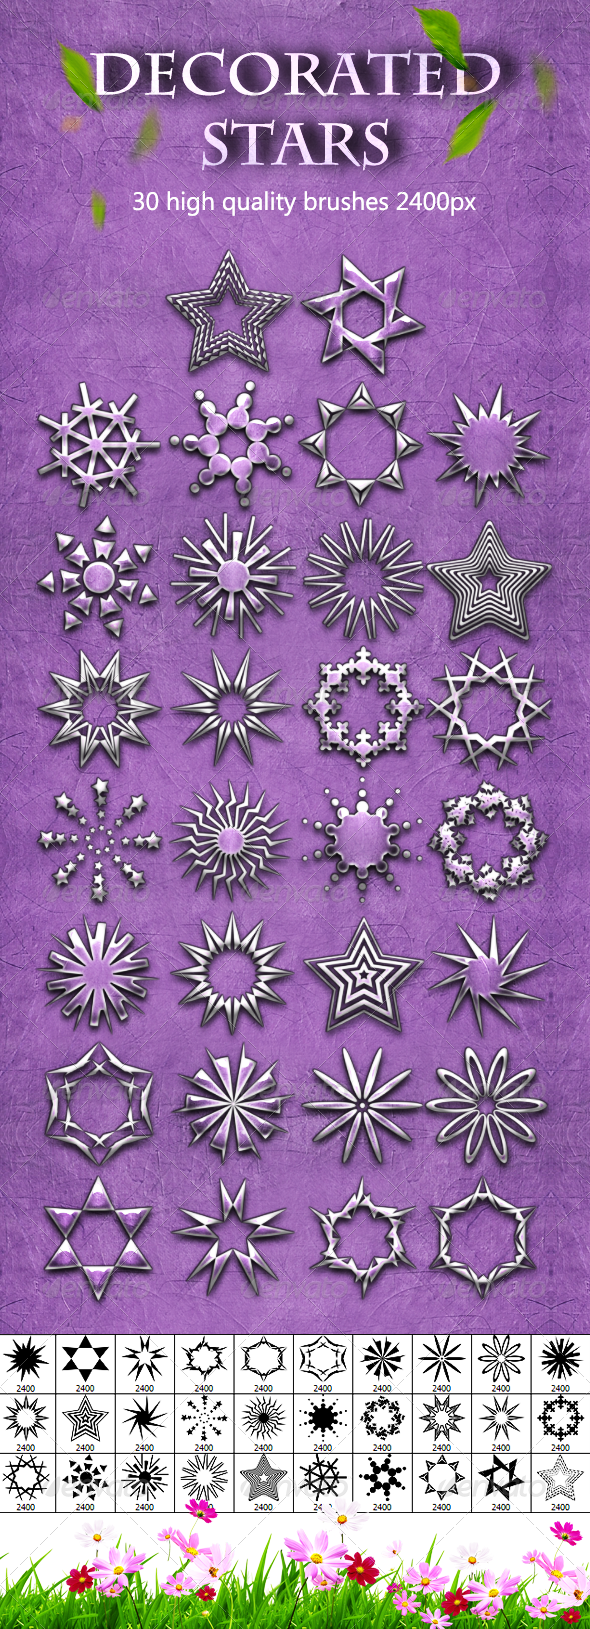 30 Decorated Stars - Artistic Brushes